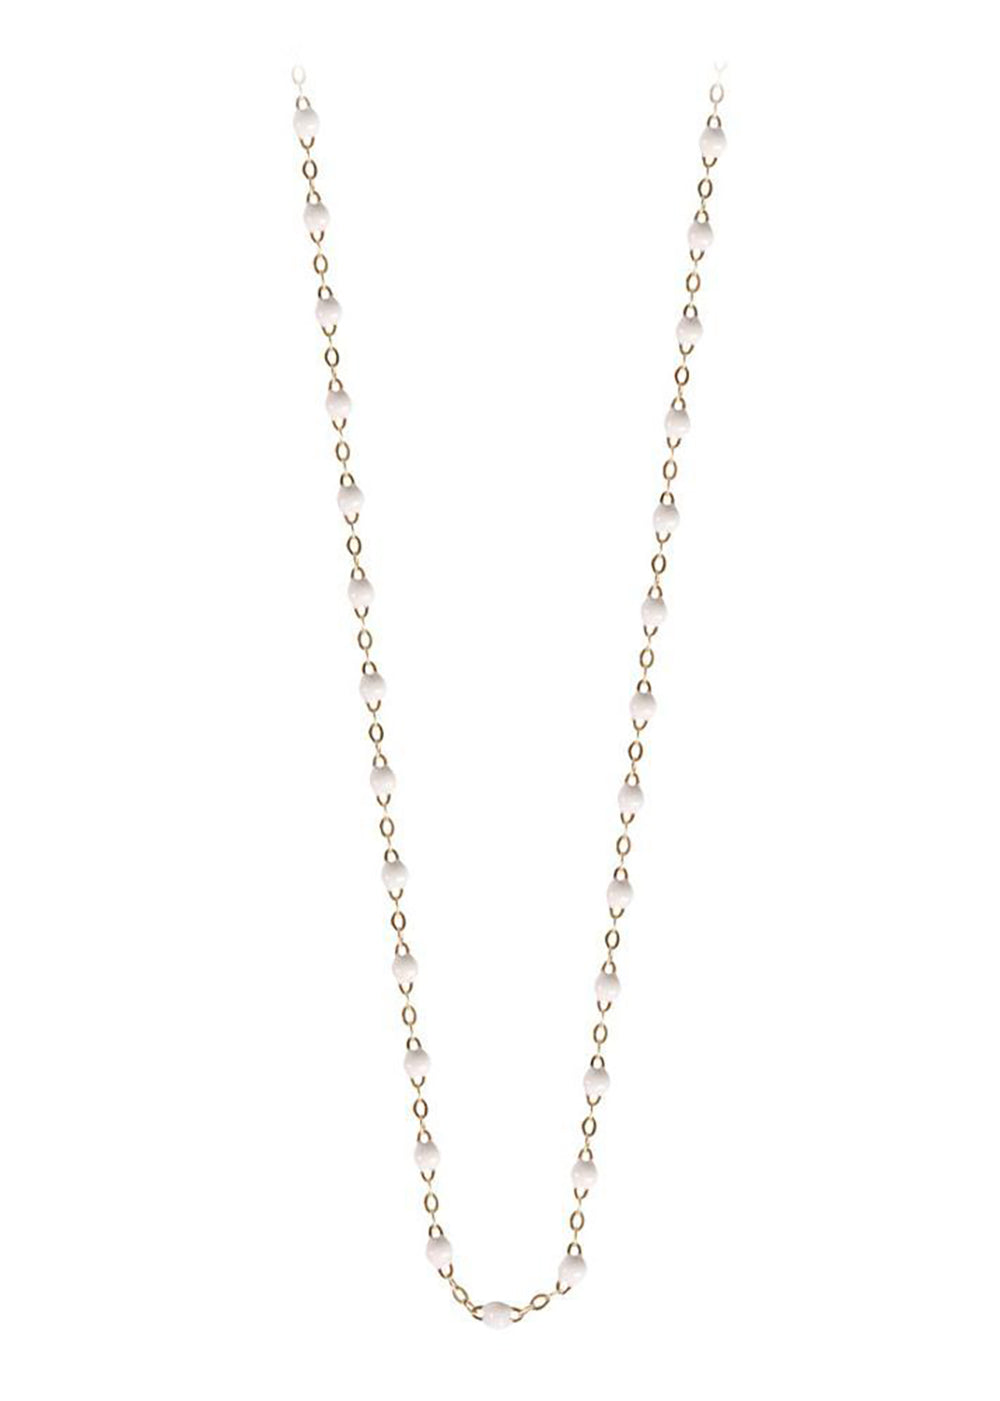 gigiCLOZEAU Jewlery  -classic gigi necklace White |18k gold|